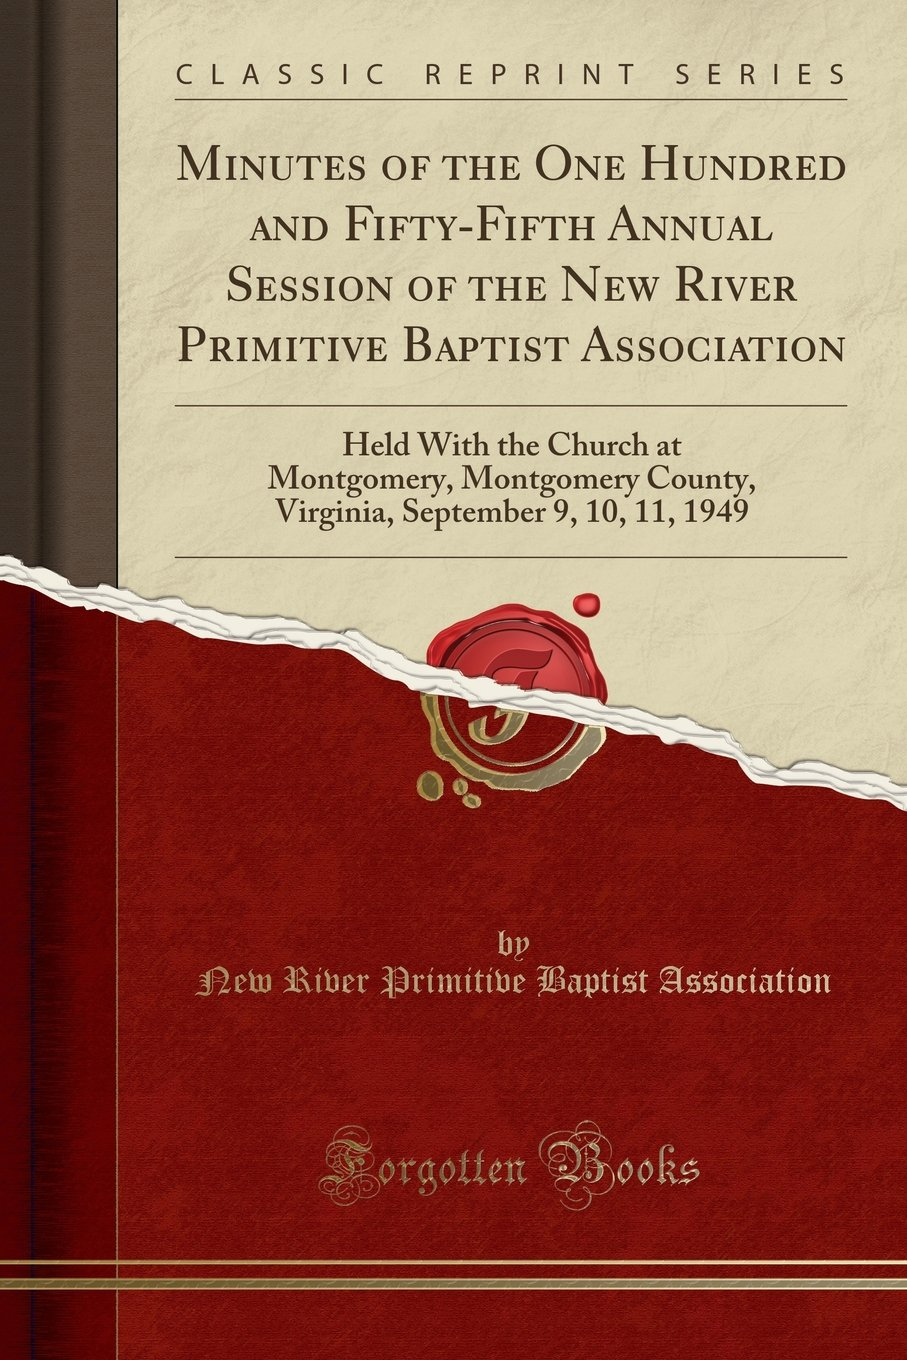 Minutes of the One Hundred and Fifty-Fifth Annual Session of the New River Primitive Baptist Association: Held With the Church at Montgomery, ... September 9, 10, 11, 1949 (Classic Reprint) pdf epub